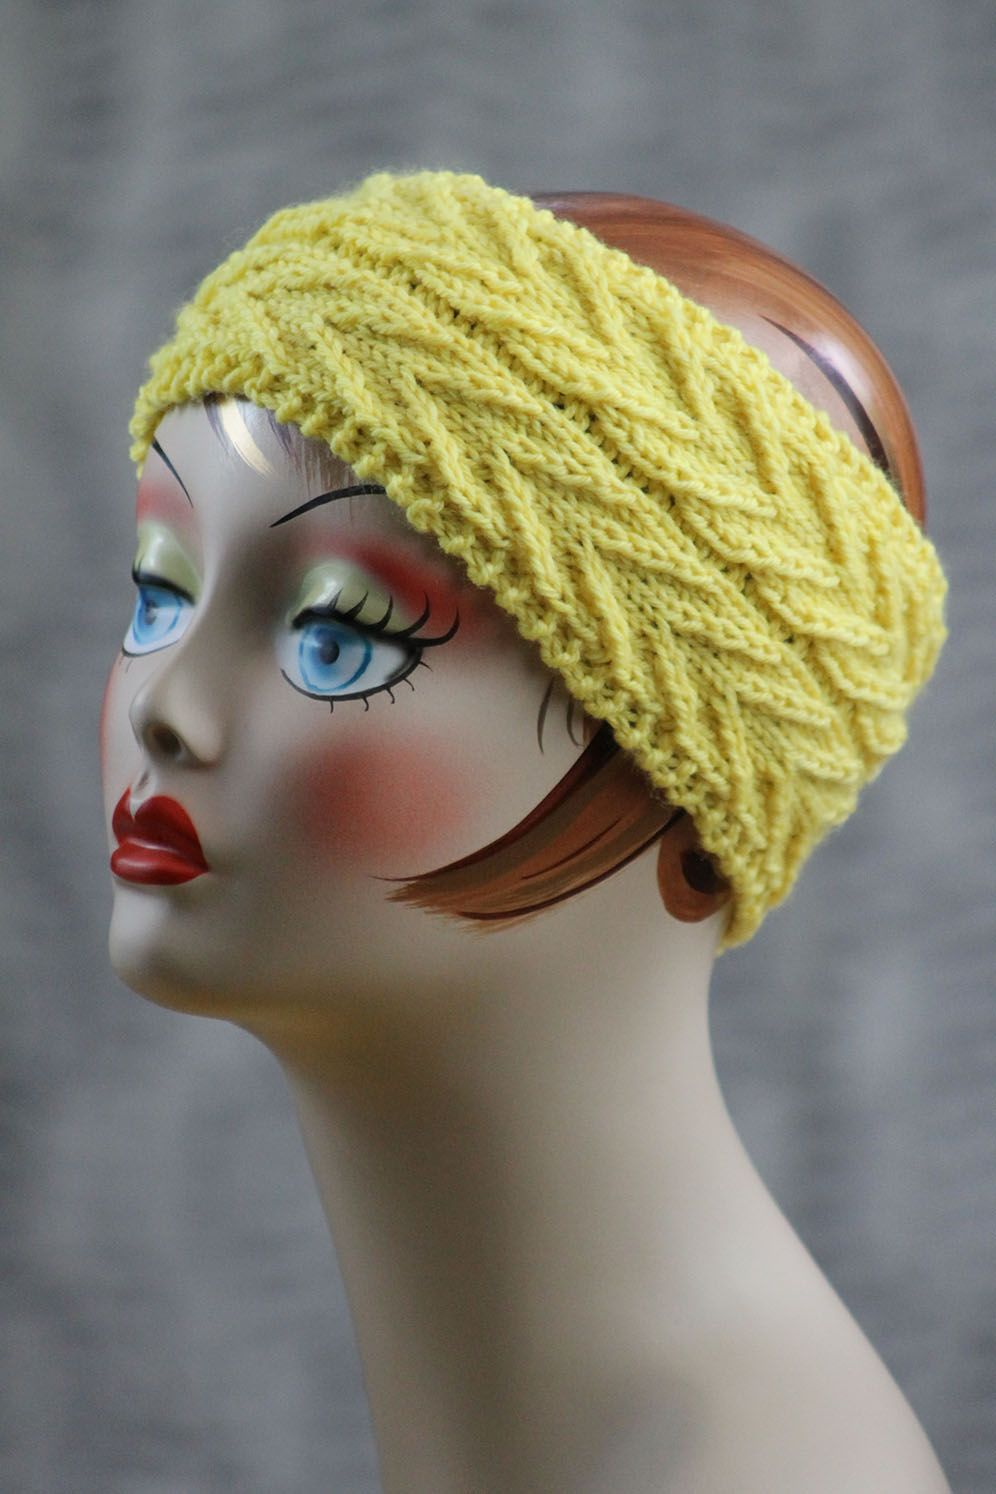 Free Knitting Pattern - Hats: Around We Go Headband | bandas para el ...